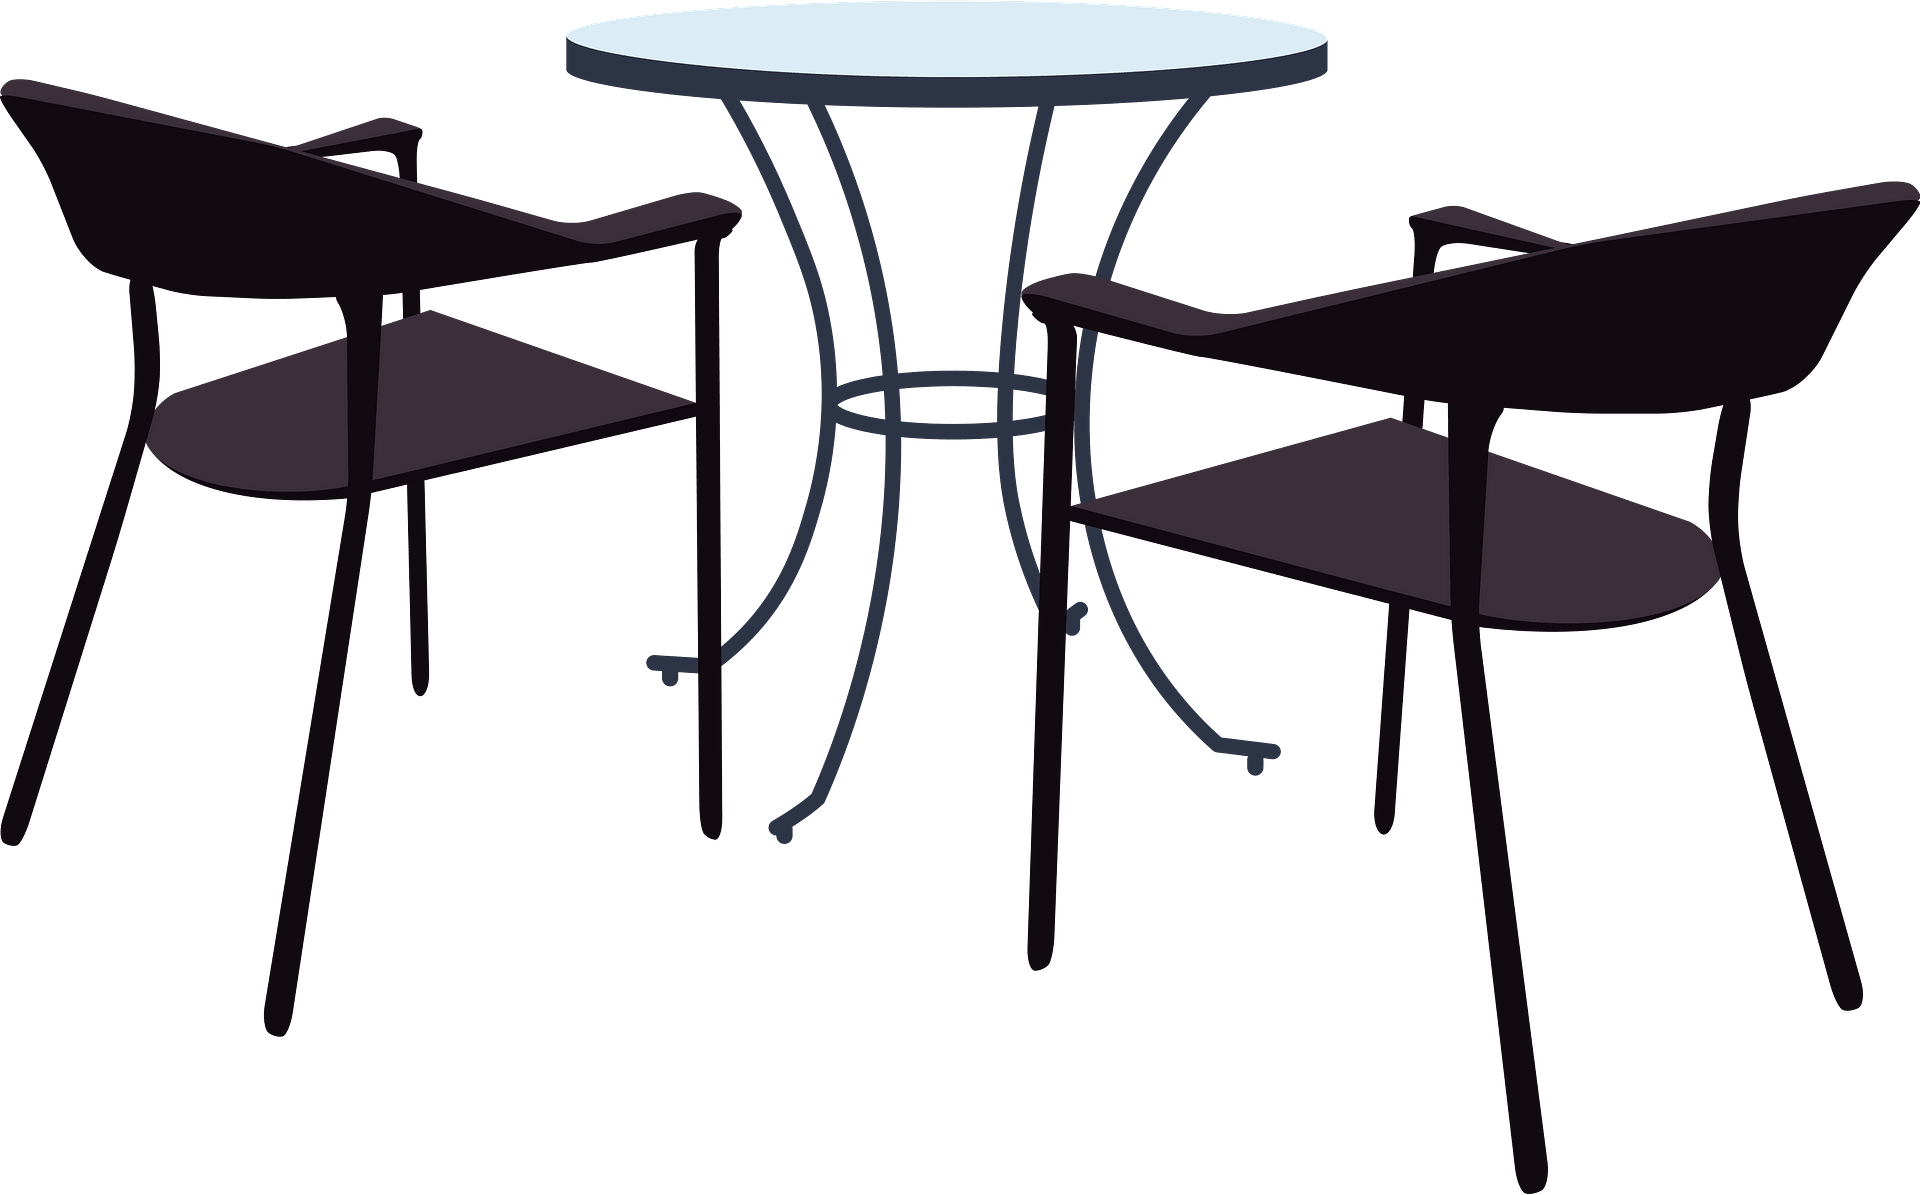 Free Outdoor Table Cliparts, Download Free Clip Art, Free Clip Art on  Clipart Library